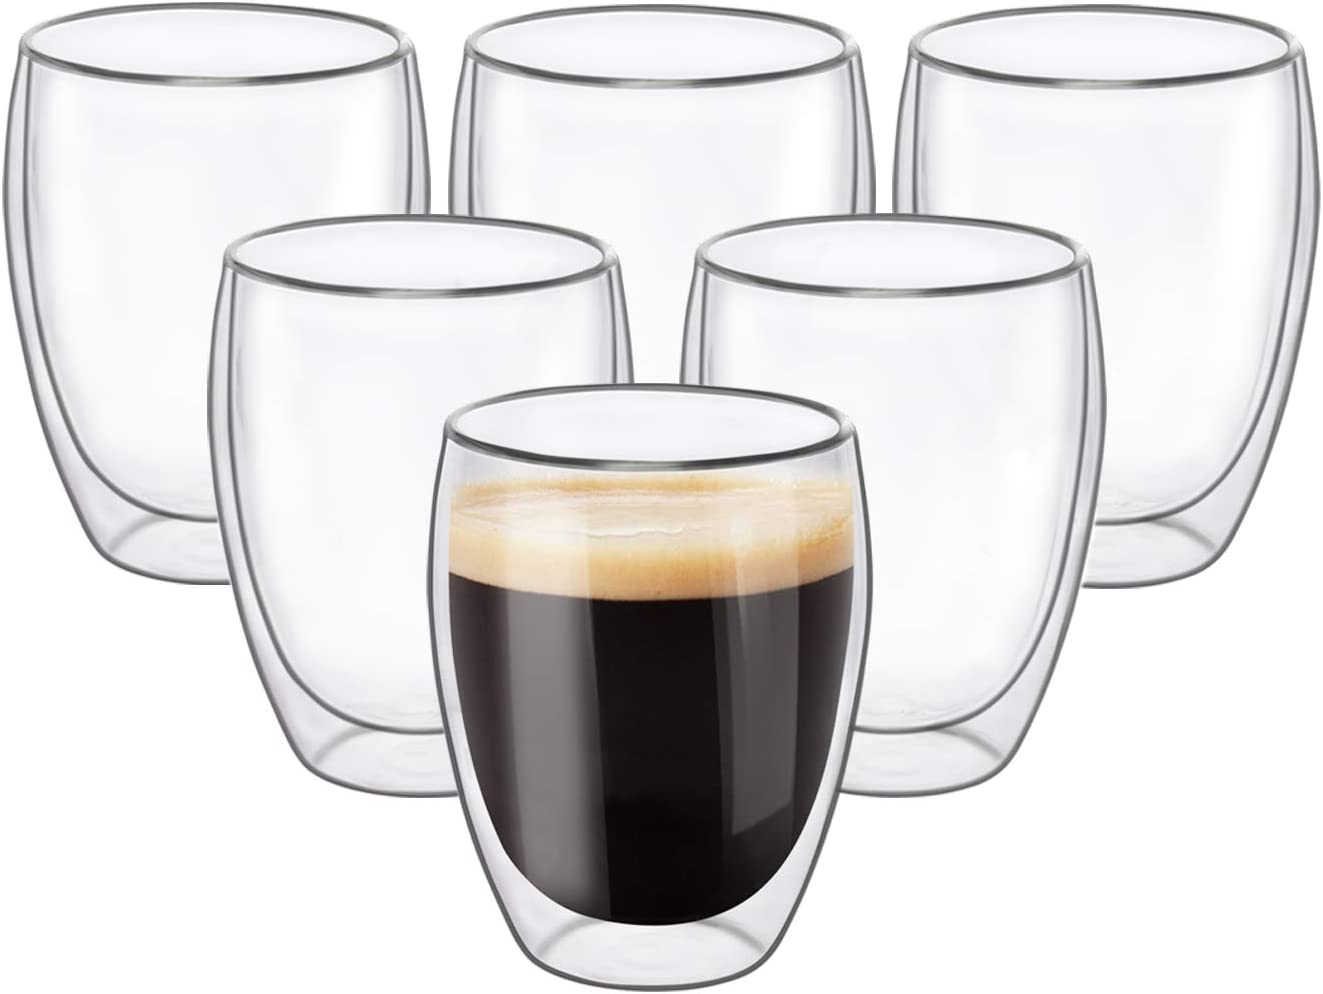 KTMAMA Double Wall Glass Coffee Mugs Set of 6 (12oz/350ml), Glass Cups for Hot Beverages,Thermal Insulated Borosilicate Glass Cups with Handle for Tea, Coffee, Latte, Cappuccino